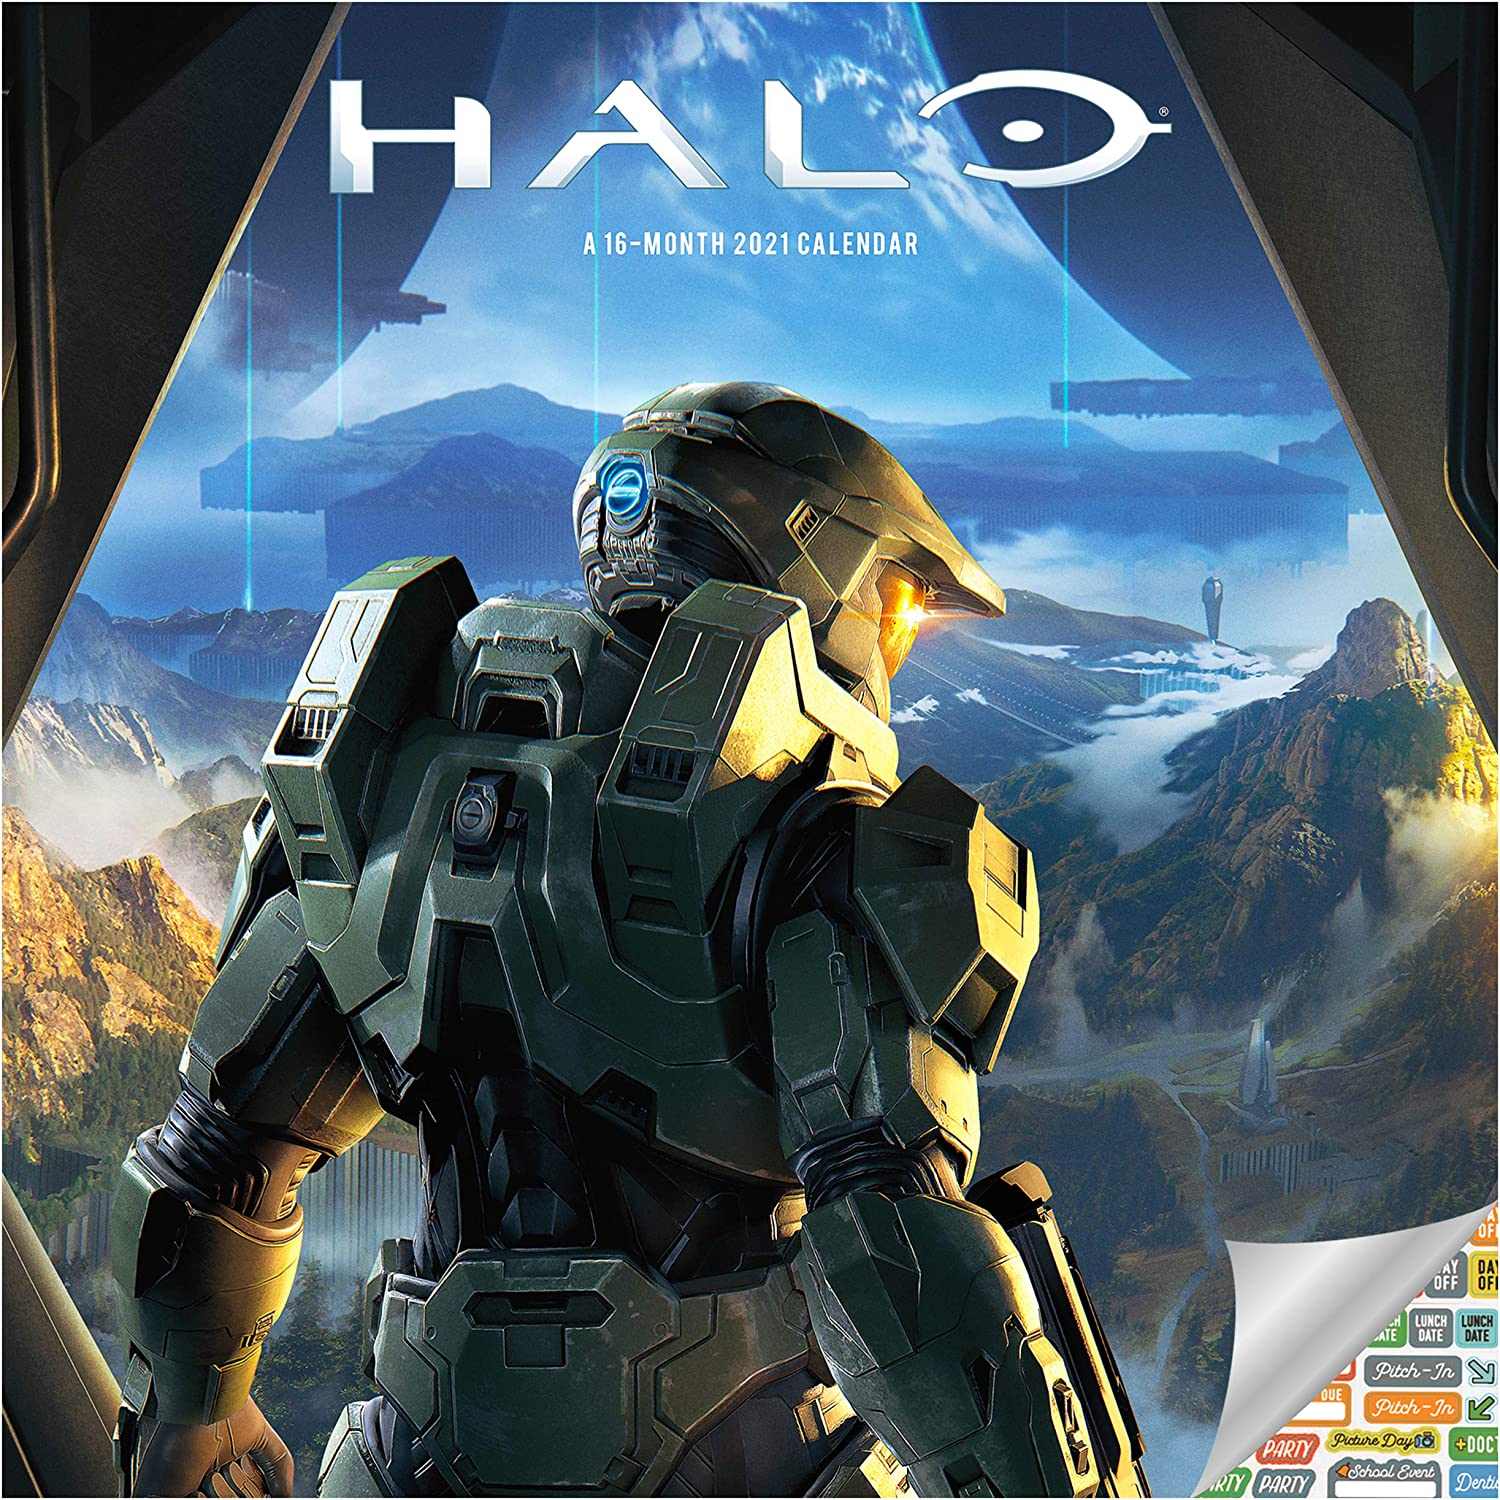 Halo Calendar 2021 Bundle - Deluxe 2021 Halo Wall Calendar with Over 100 Calendar Stickers (Halo Gifts, Office Supplies)